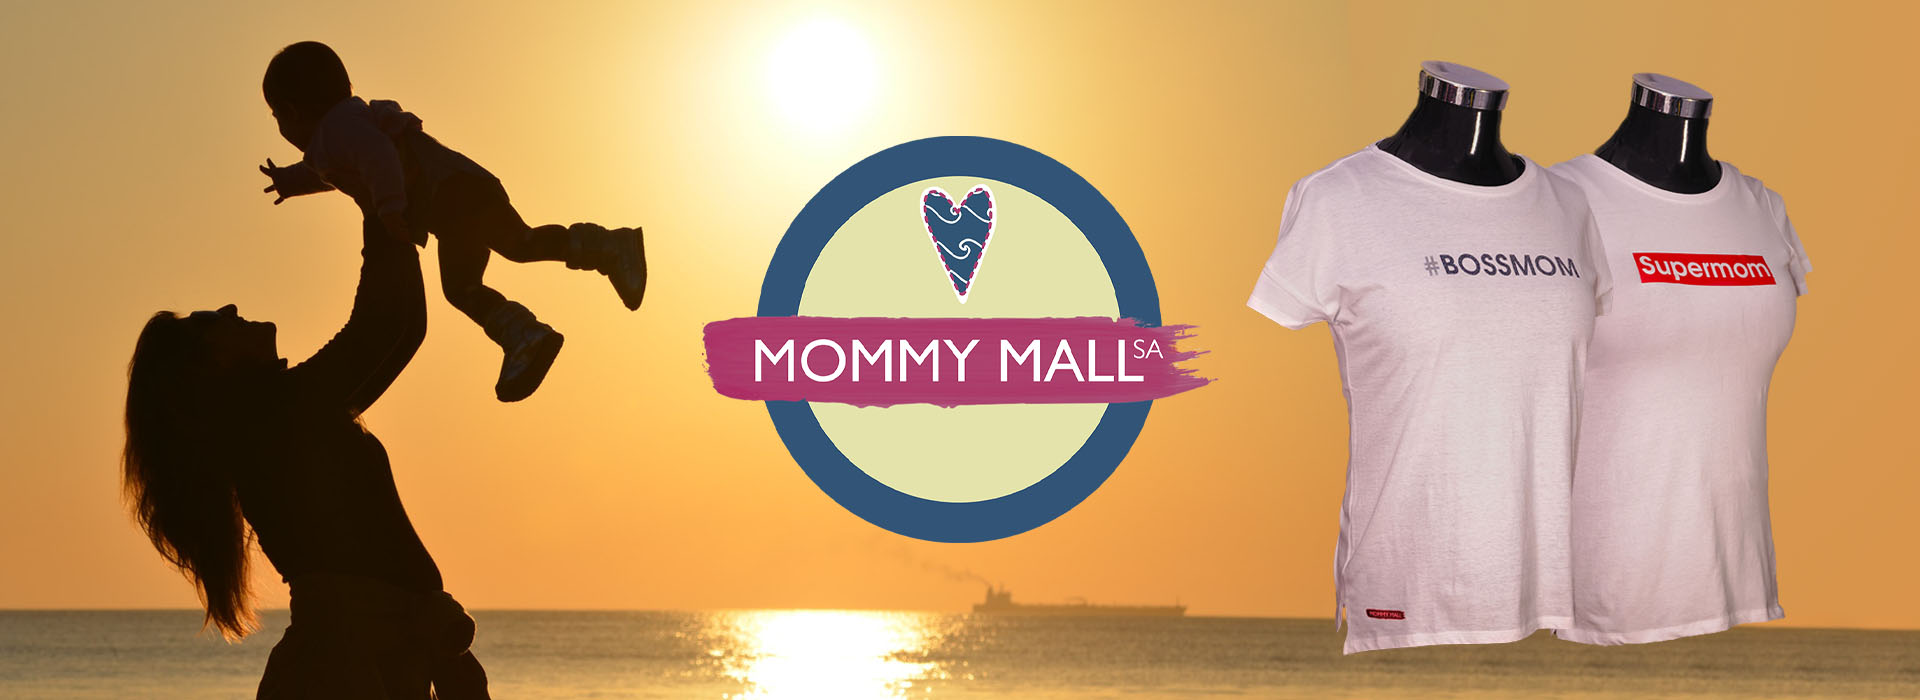 Mommy Mall SA